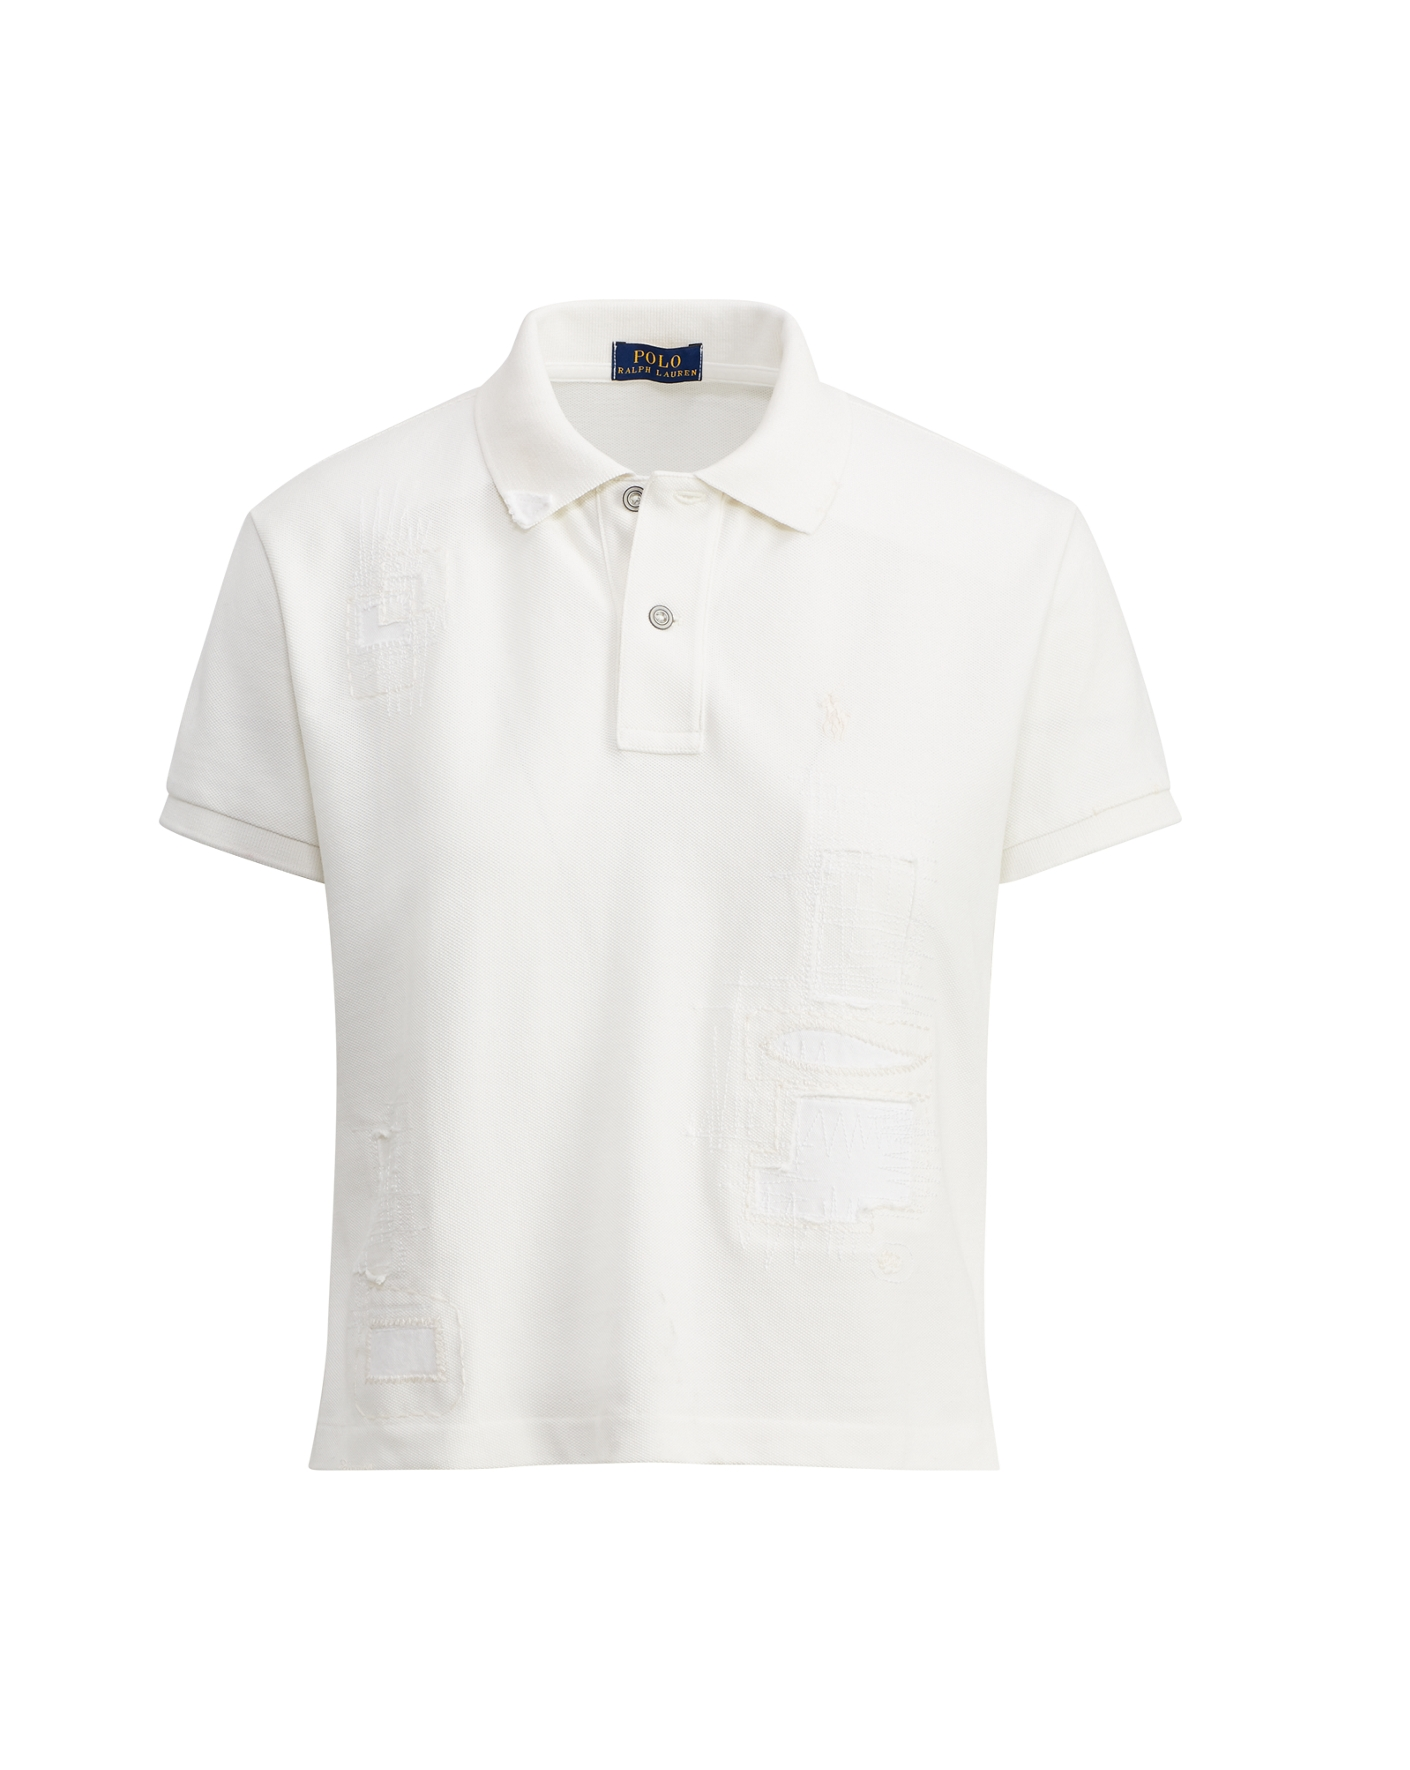 Women's Polo Shirts, Mesh Polos, & Stretch Polos | Ralph Lauren